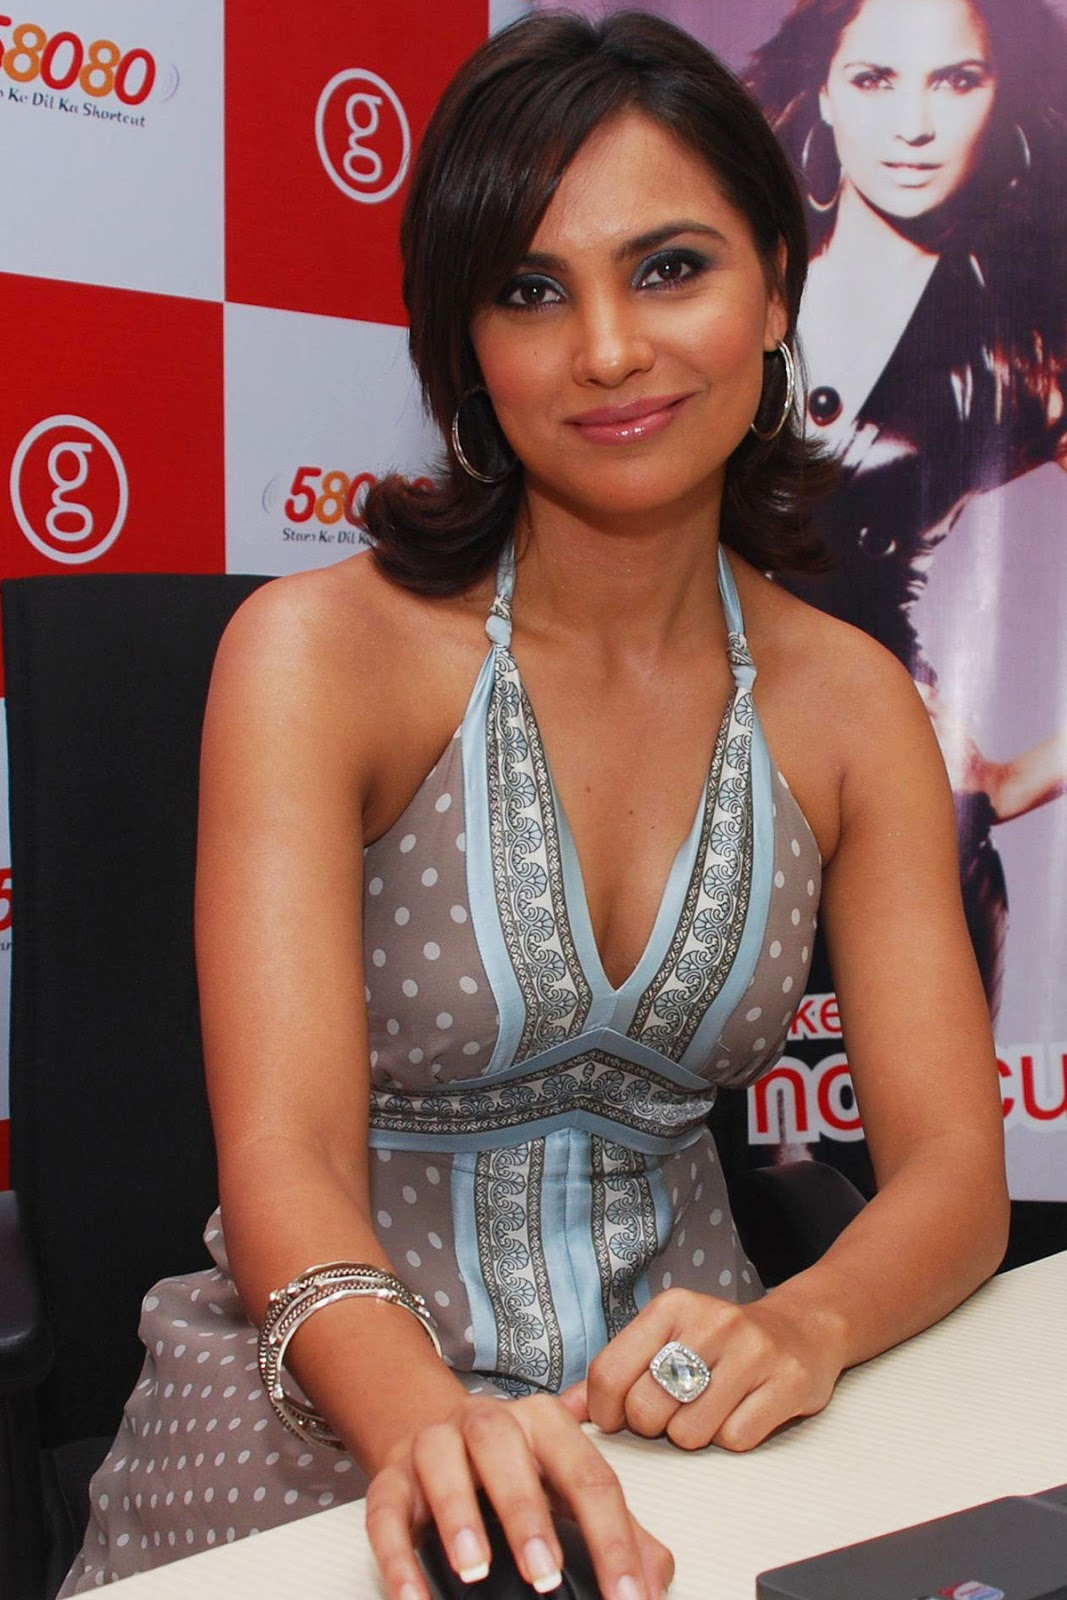 Lara dutta press meet photos